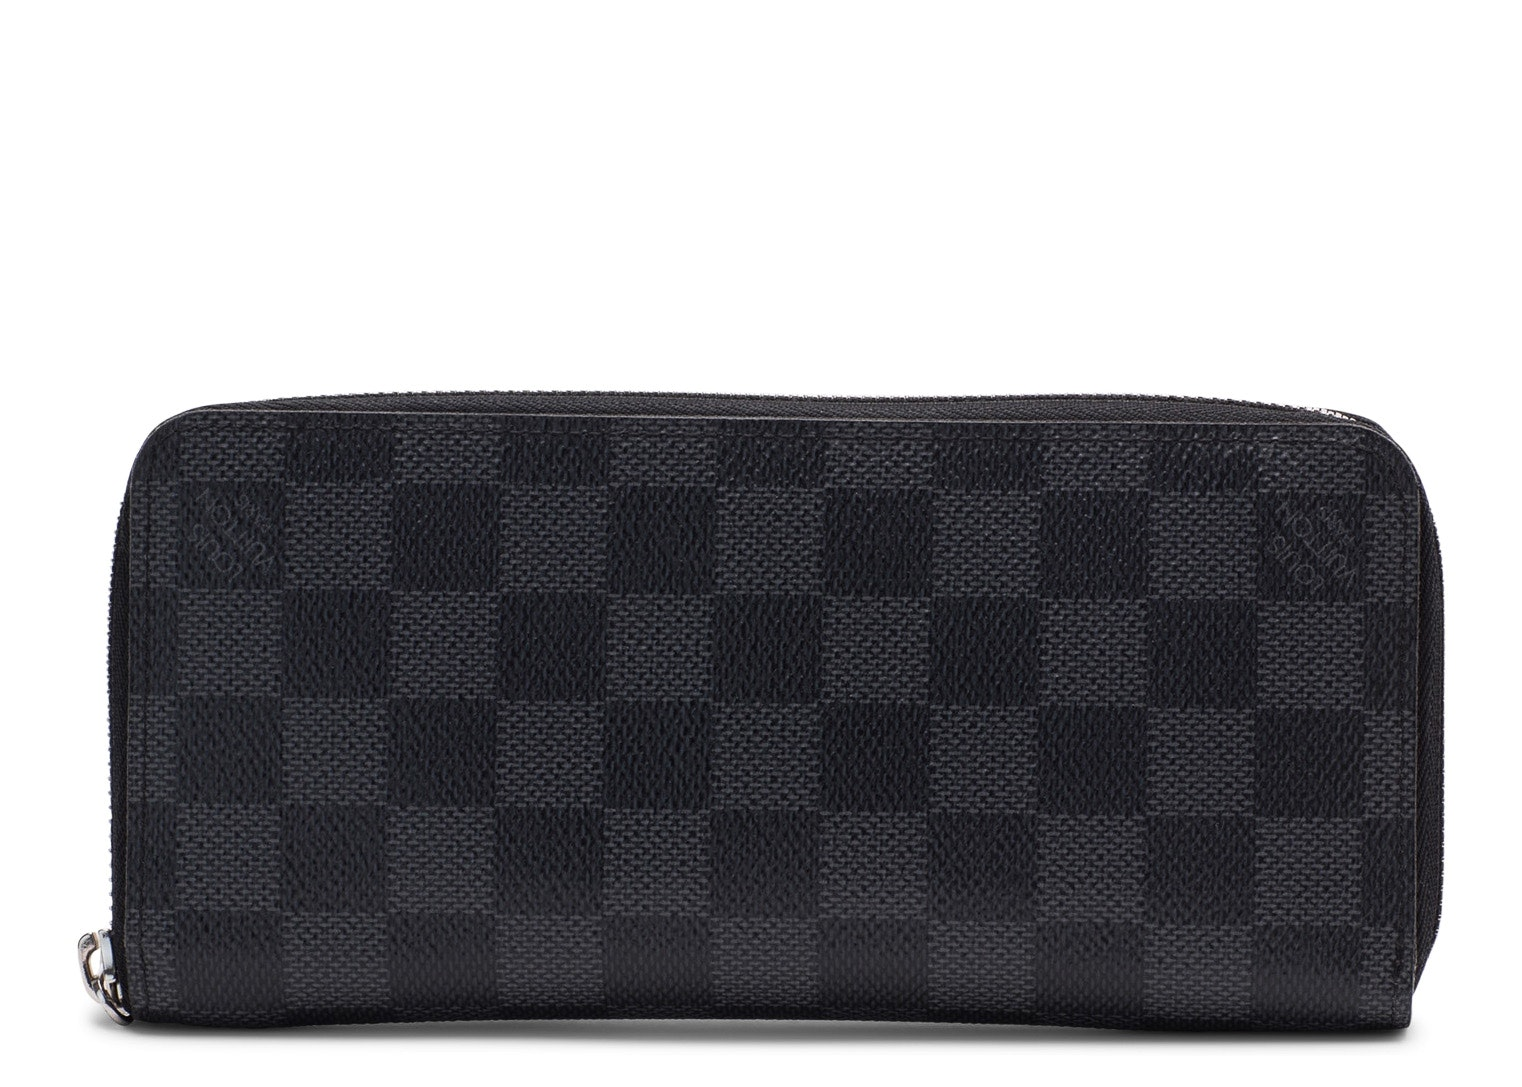 Damier Graphite Black